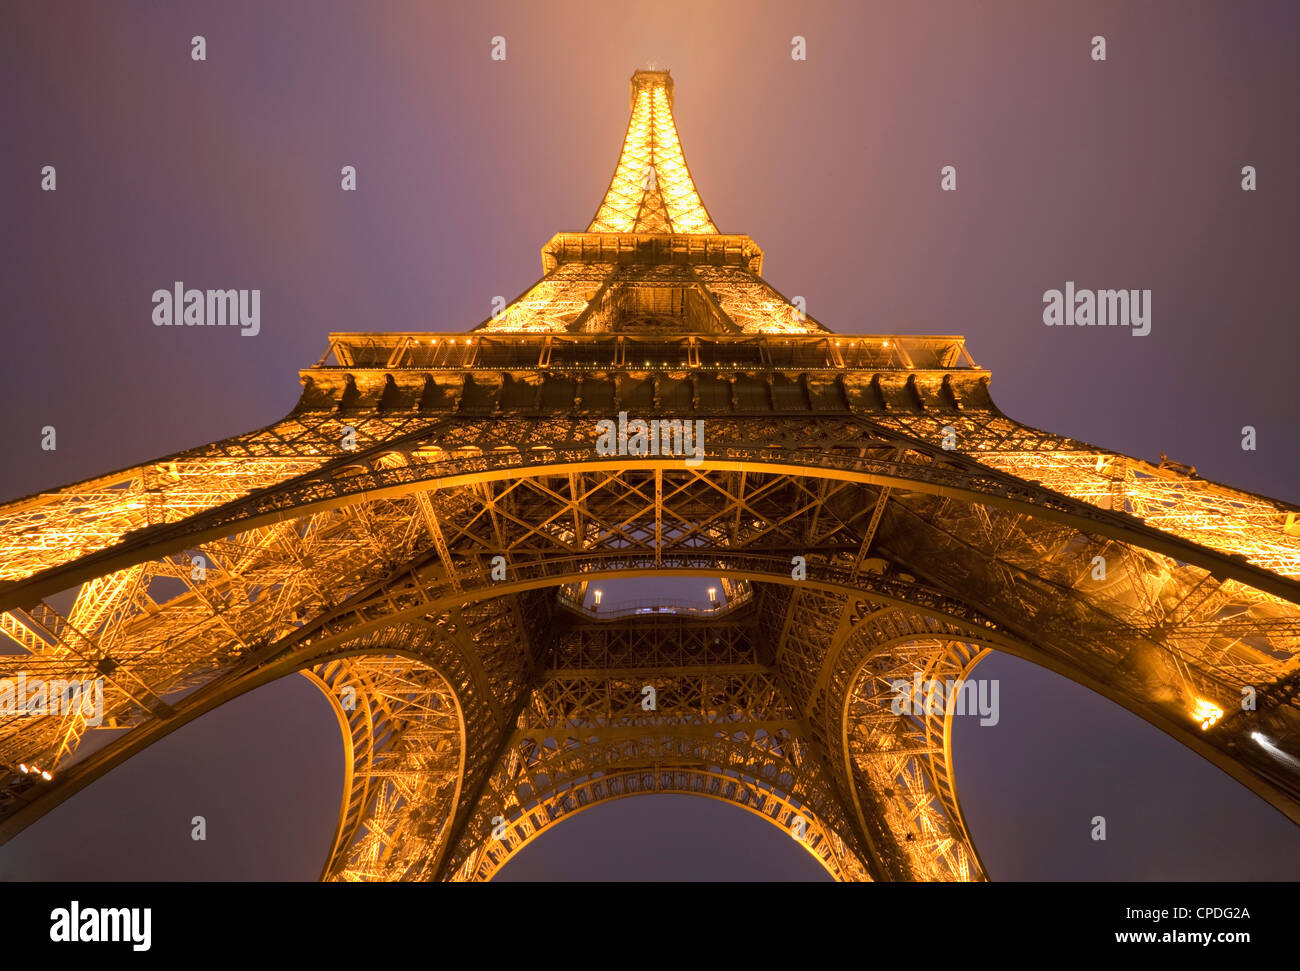 Wide view of the Eiffel tower at night, Paris, France, Europe Stock Photo